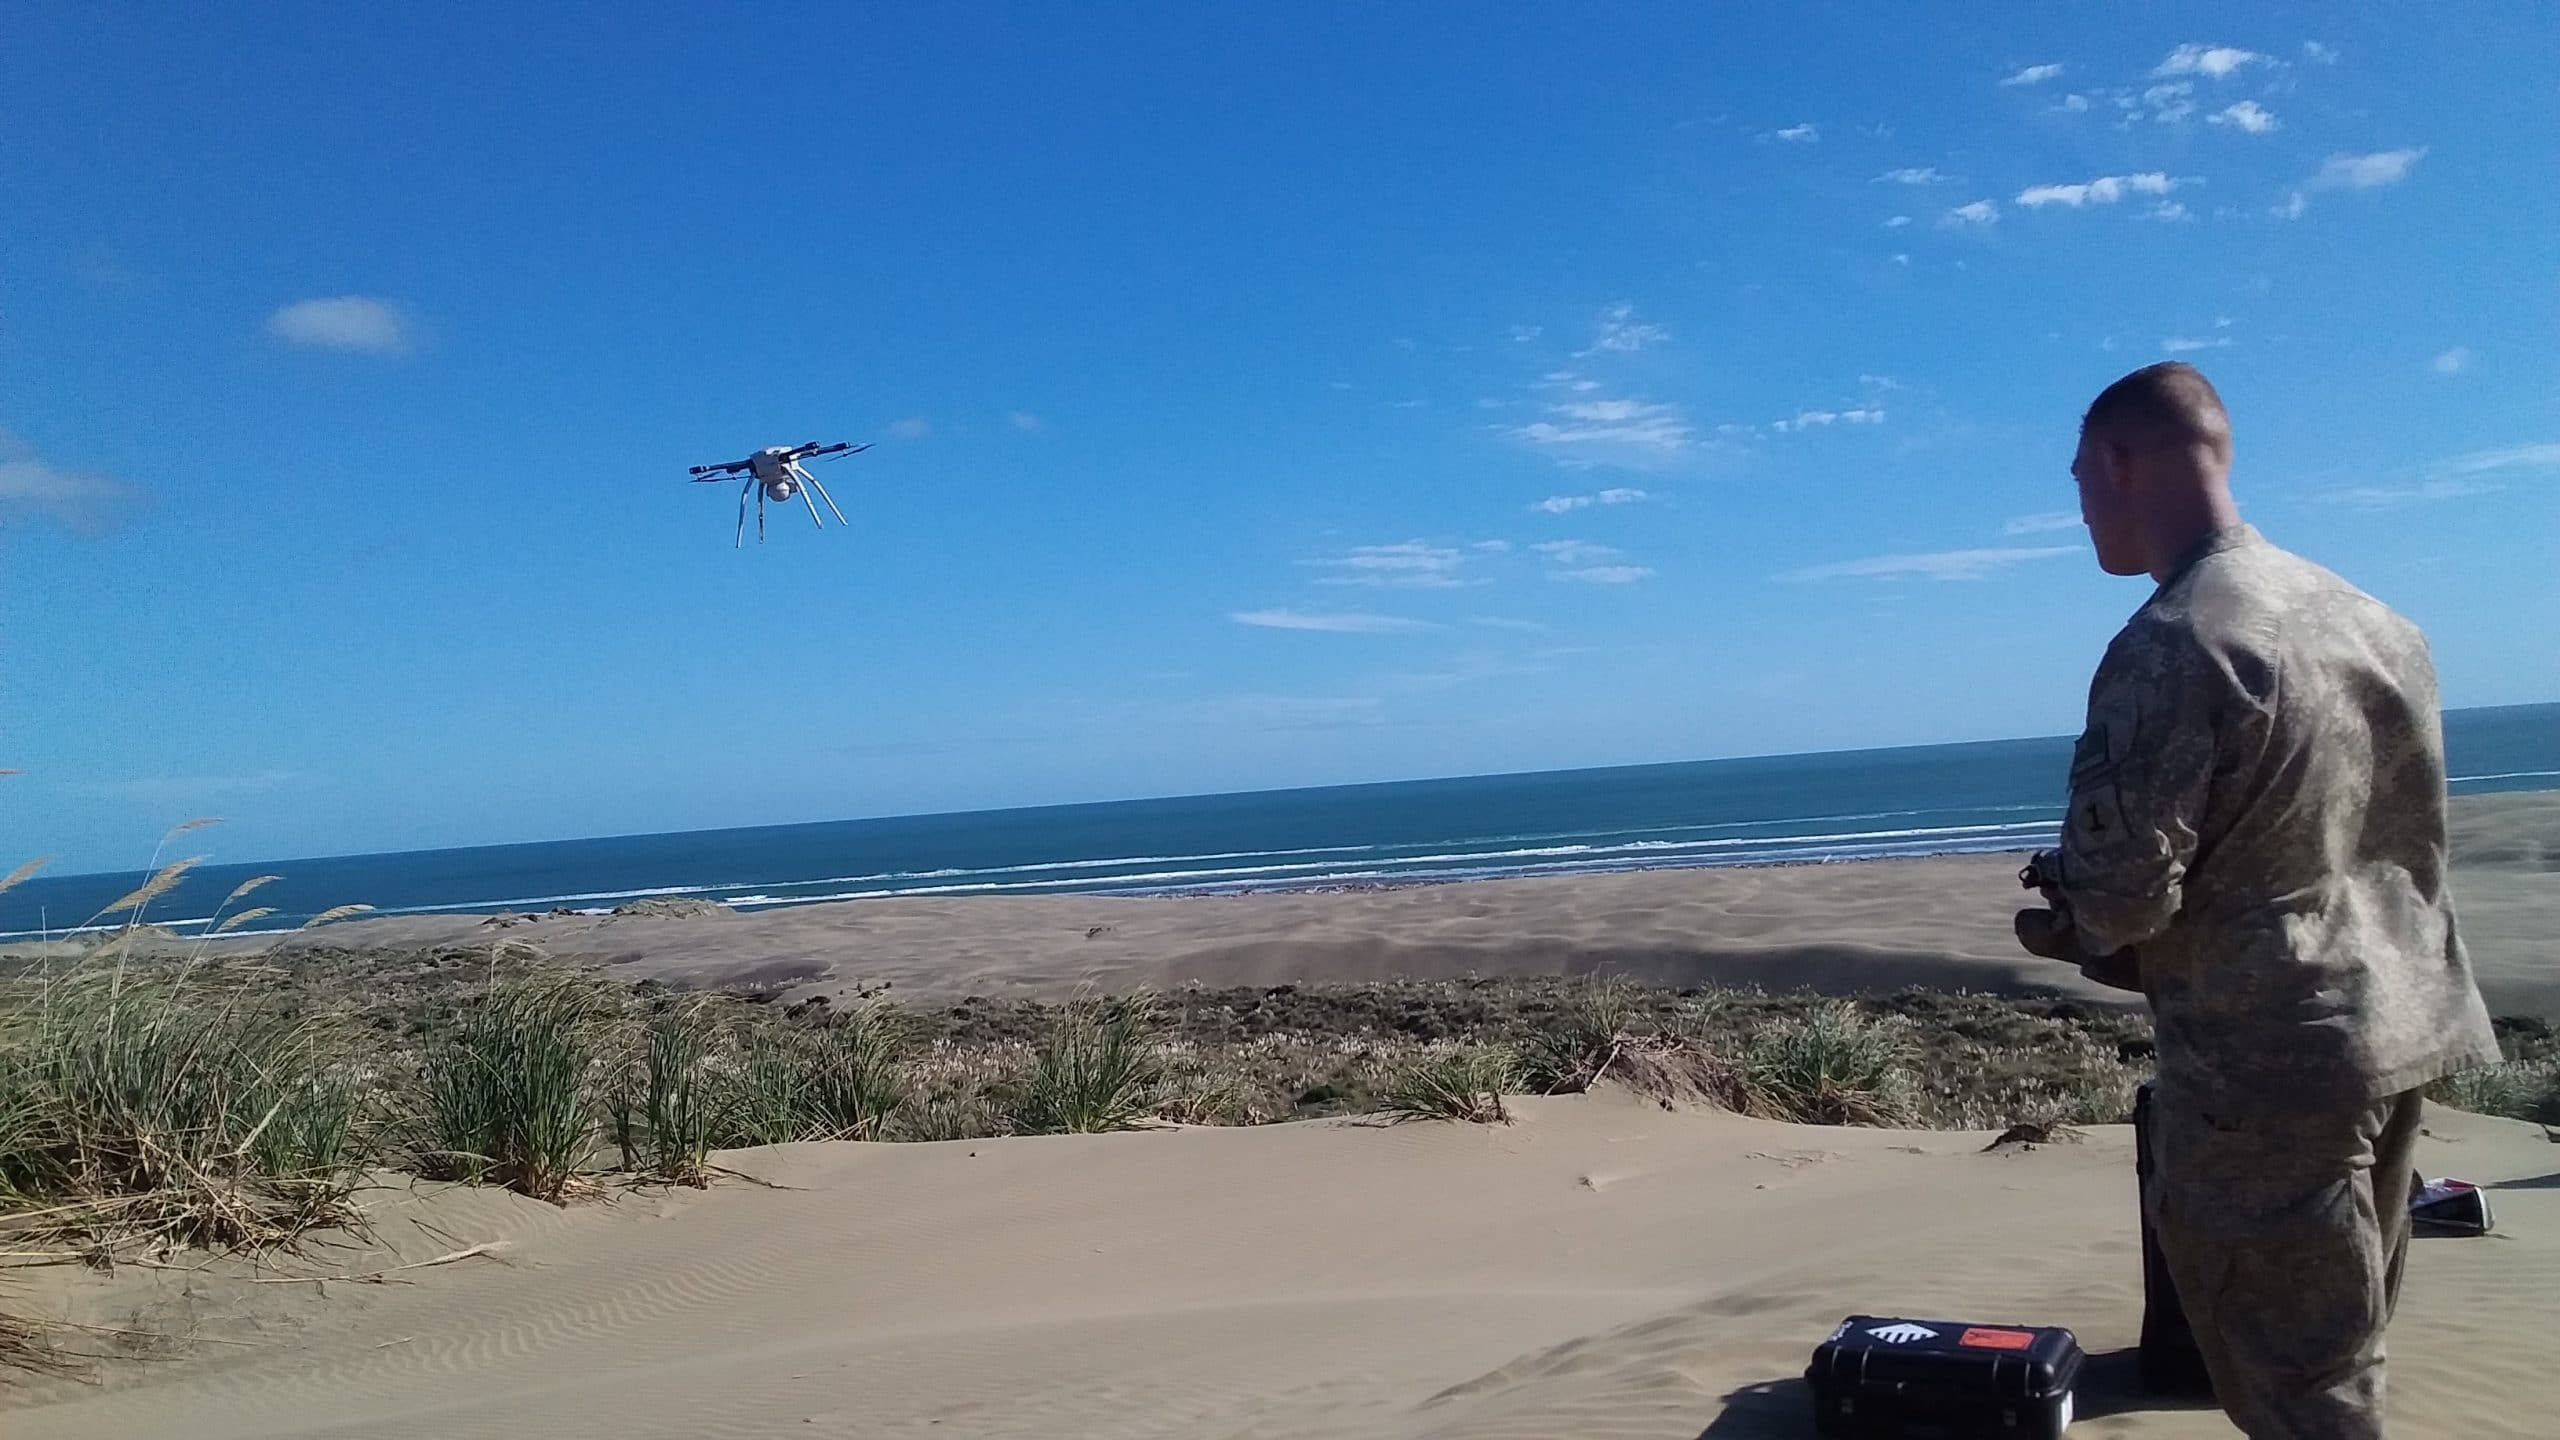 Drone at the Beach 2